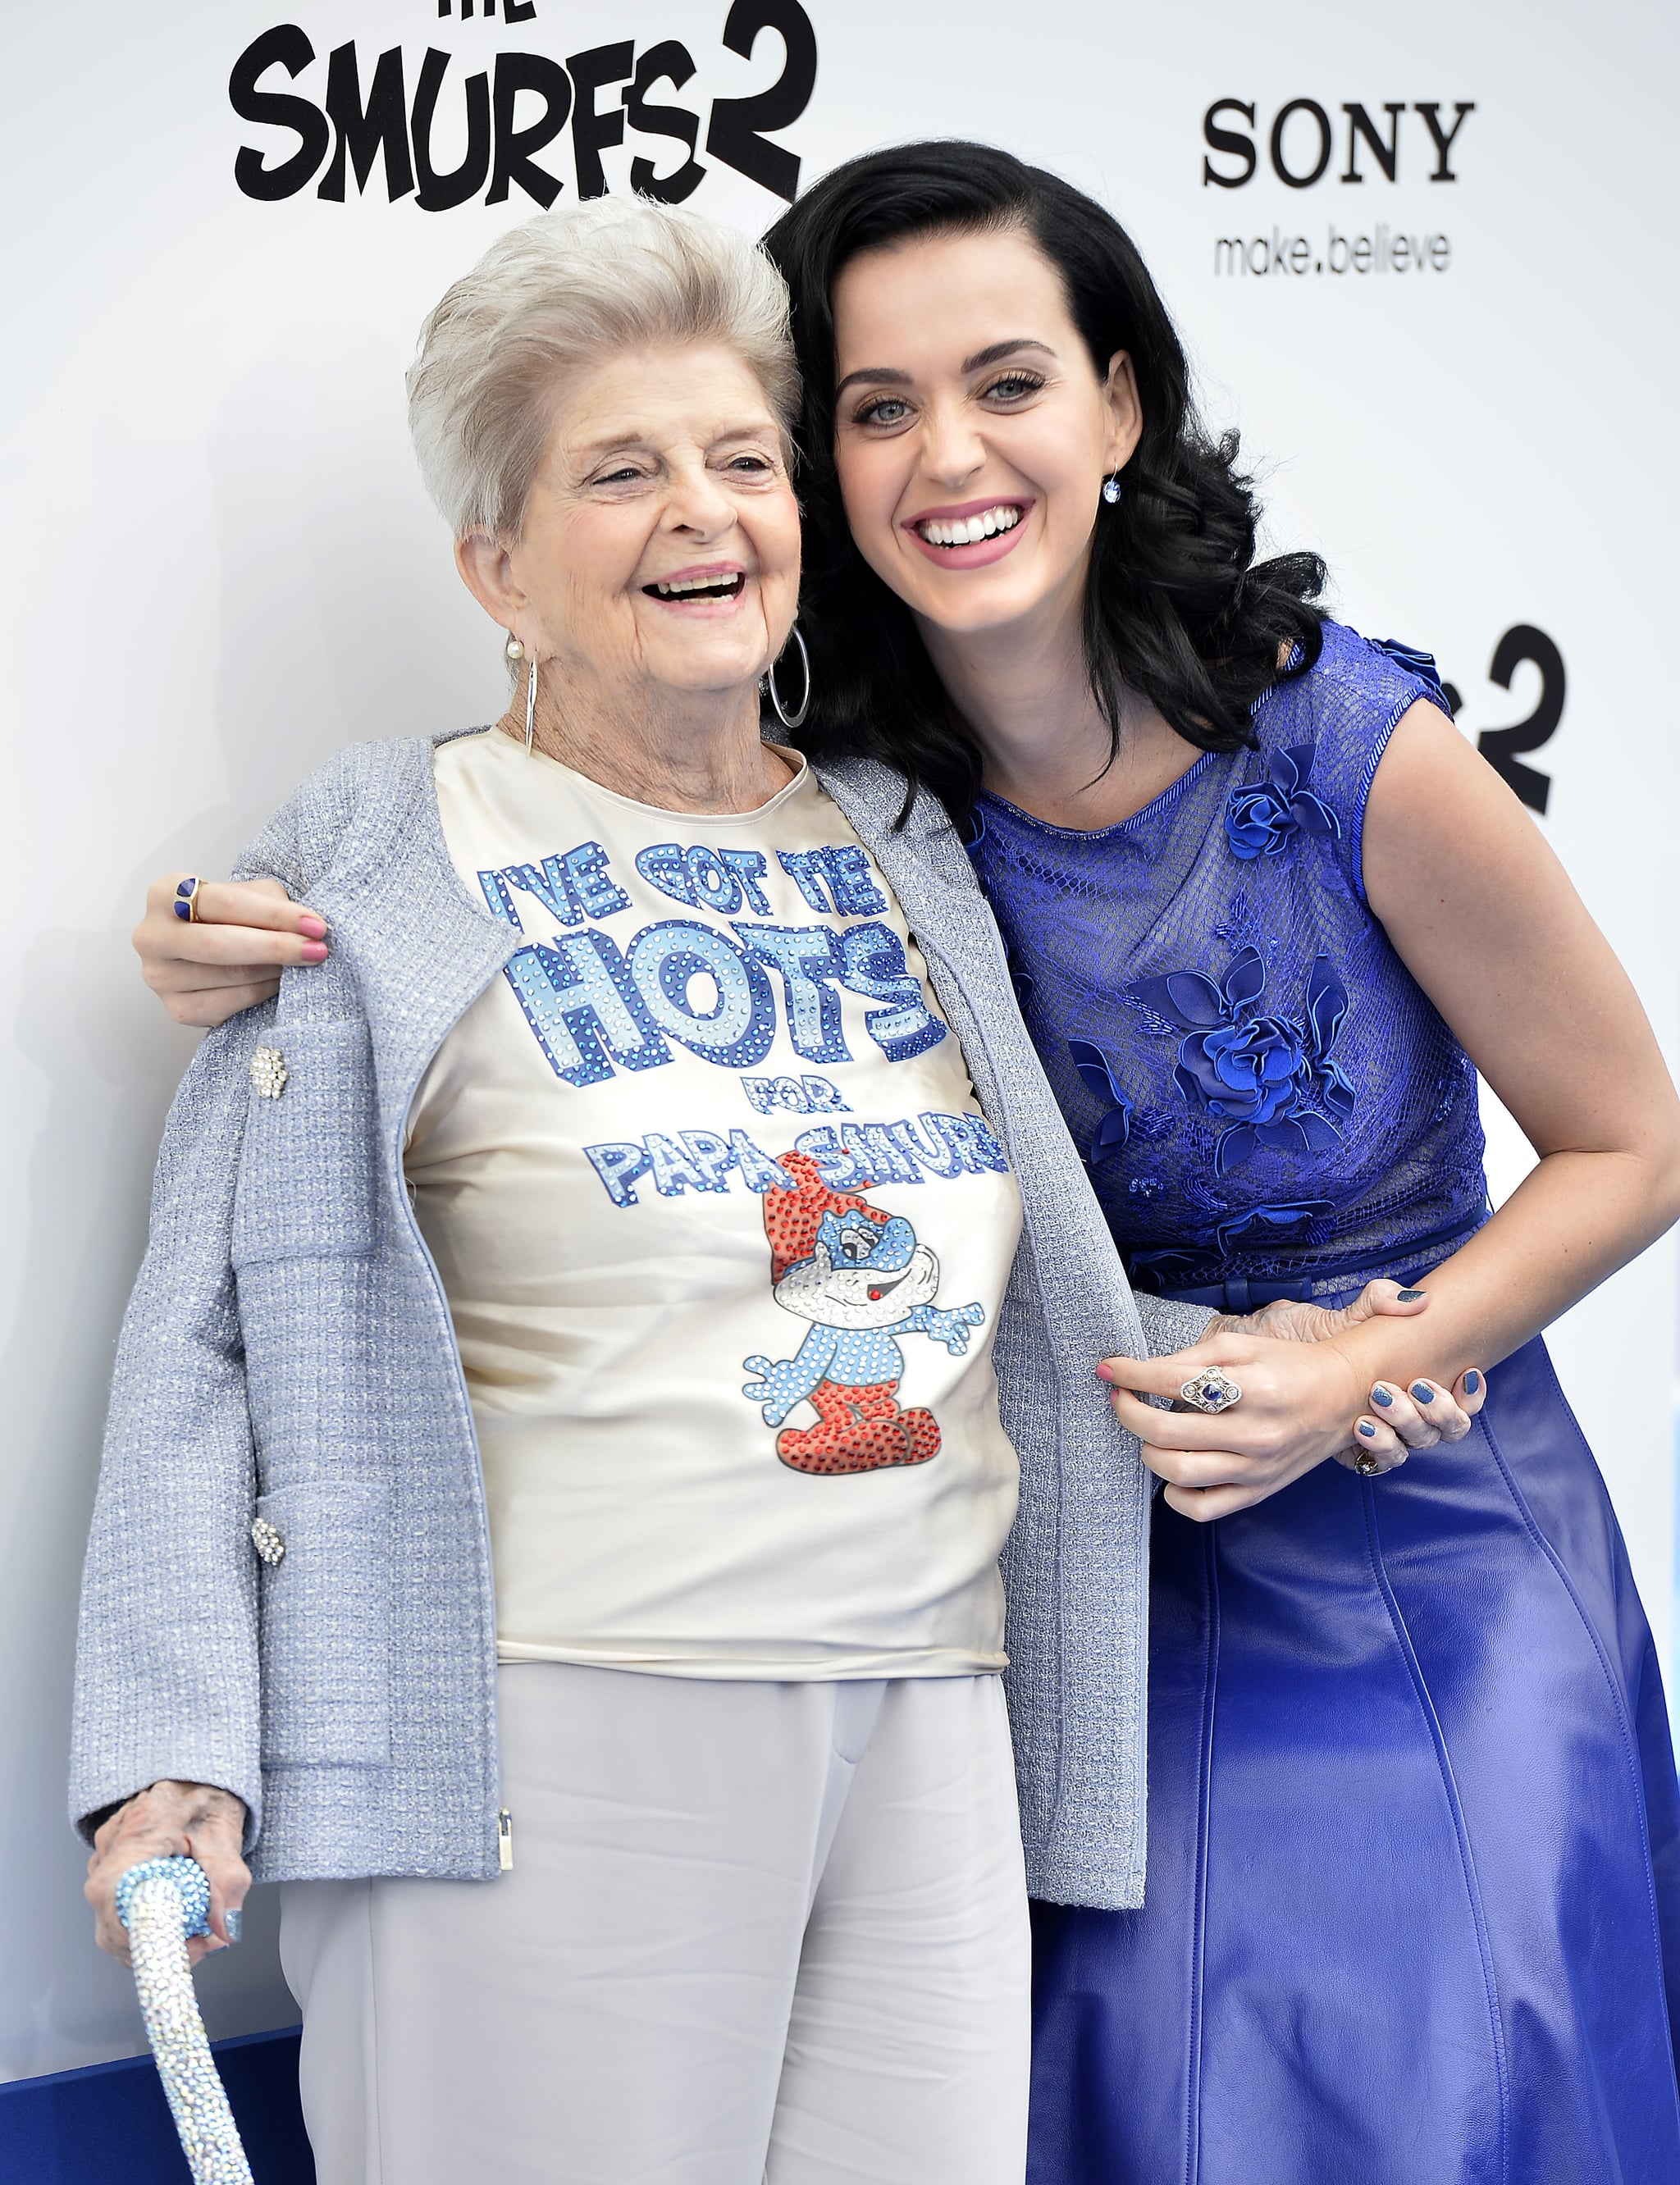 Katy Perry Attended The Premiere With Her Grandmother Ann Hudson Katy Perry Has A Fangirl Moment With Britney Spears At The Smurfs 2 Premiere Popsugar Celebrity Photo 3